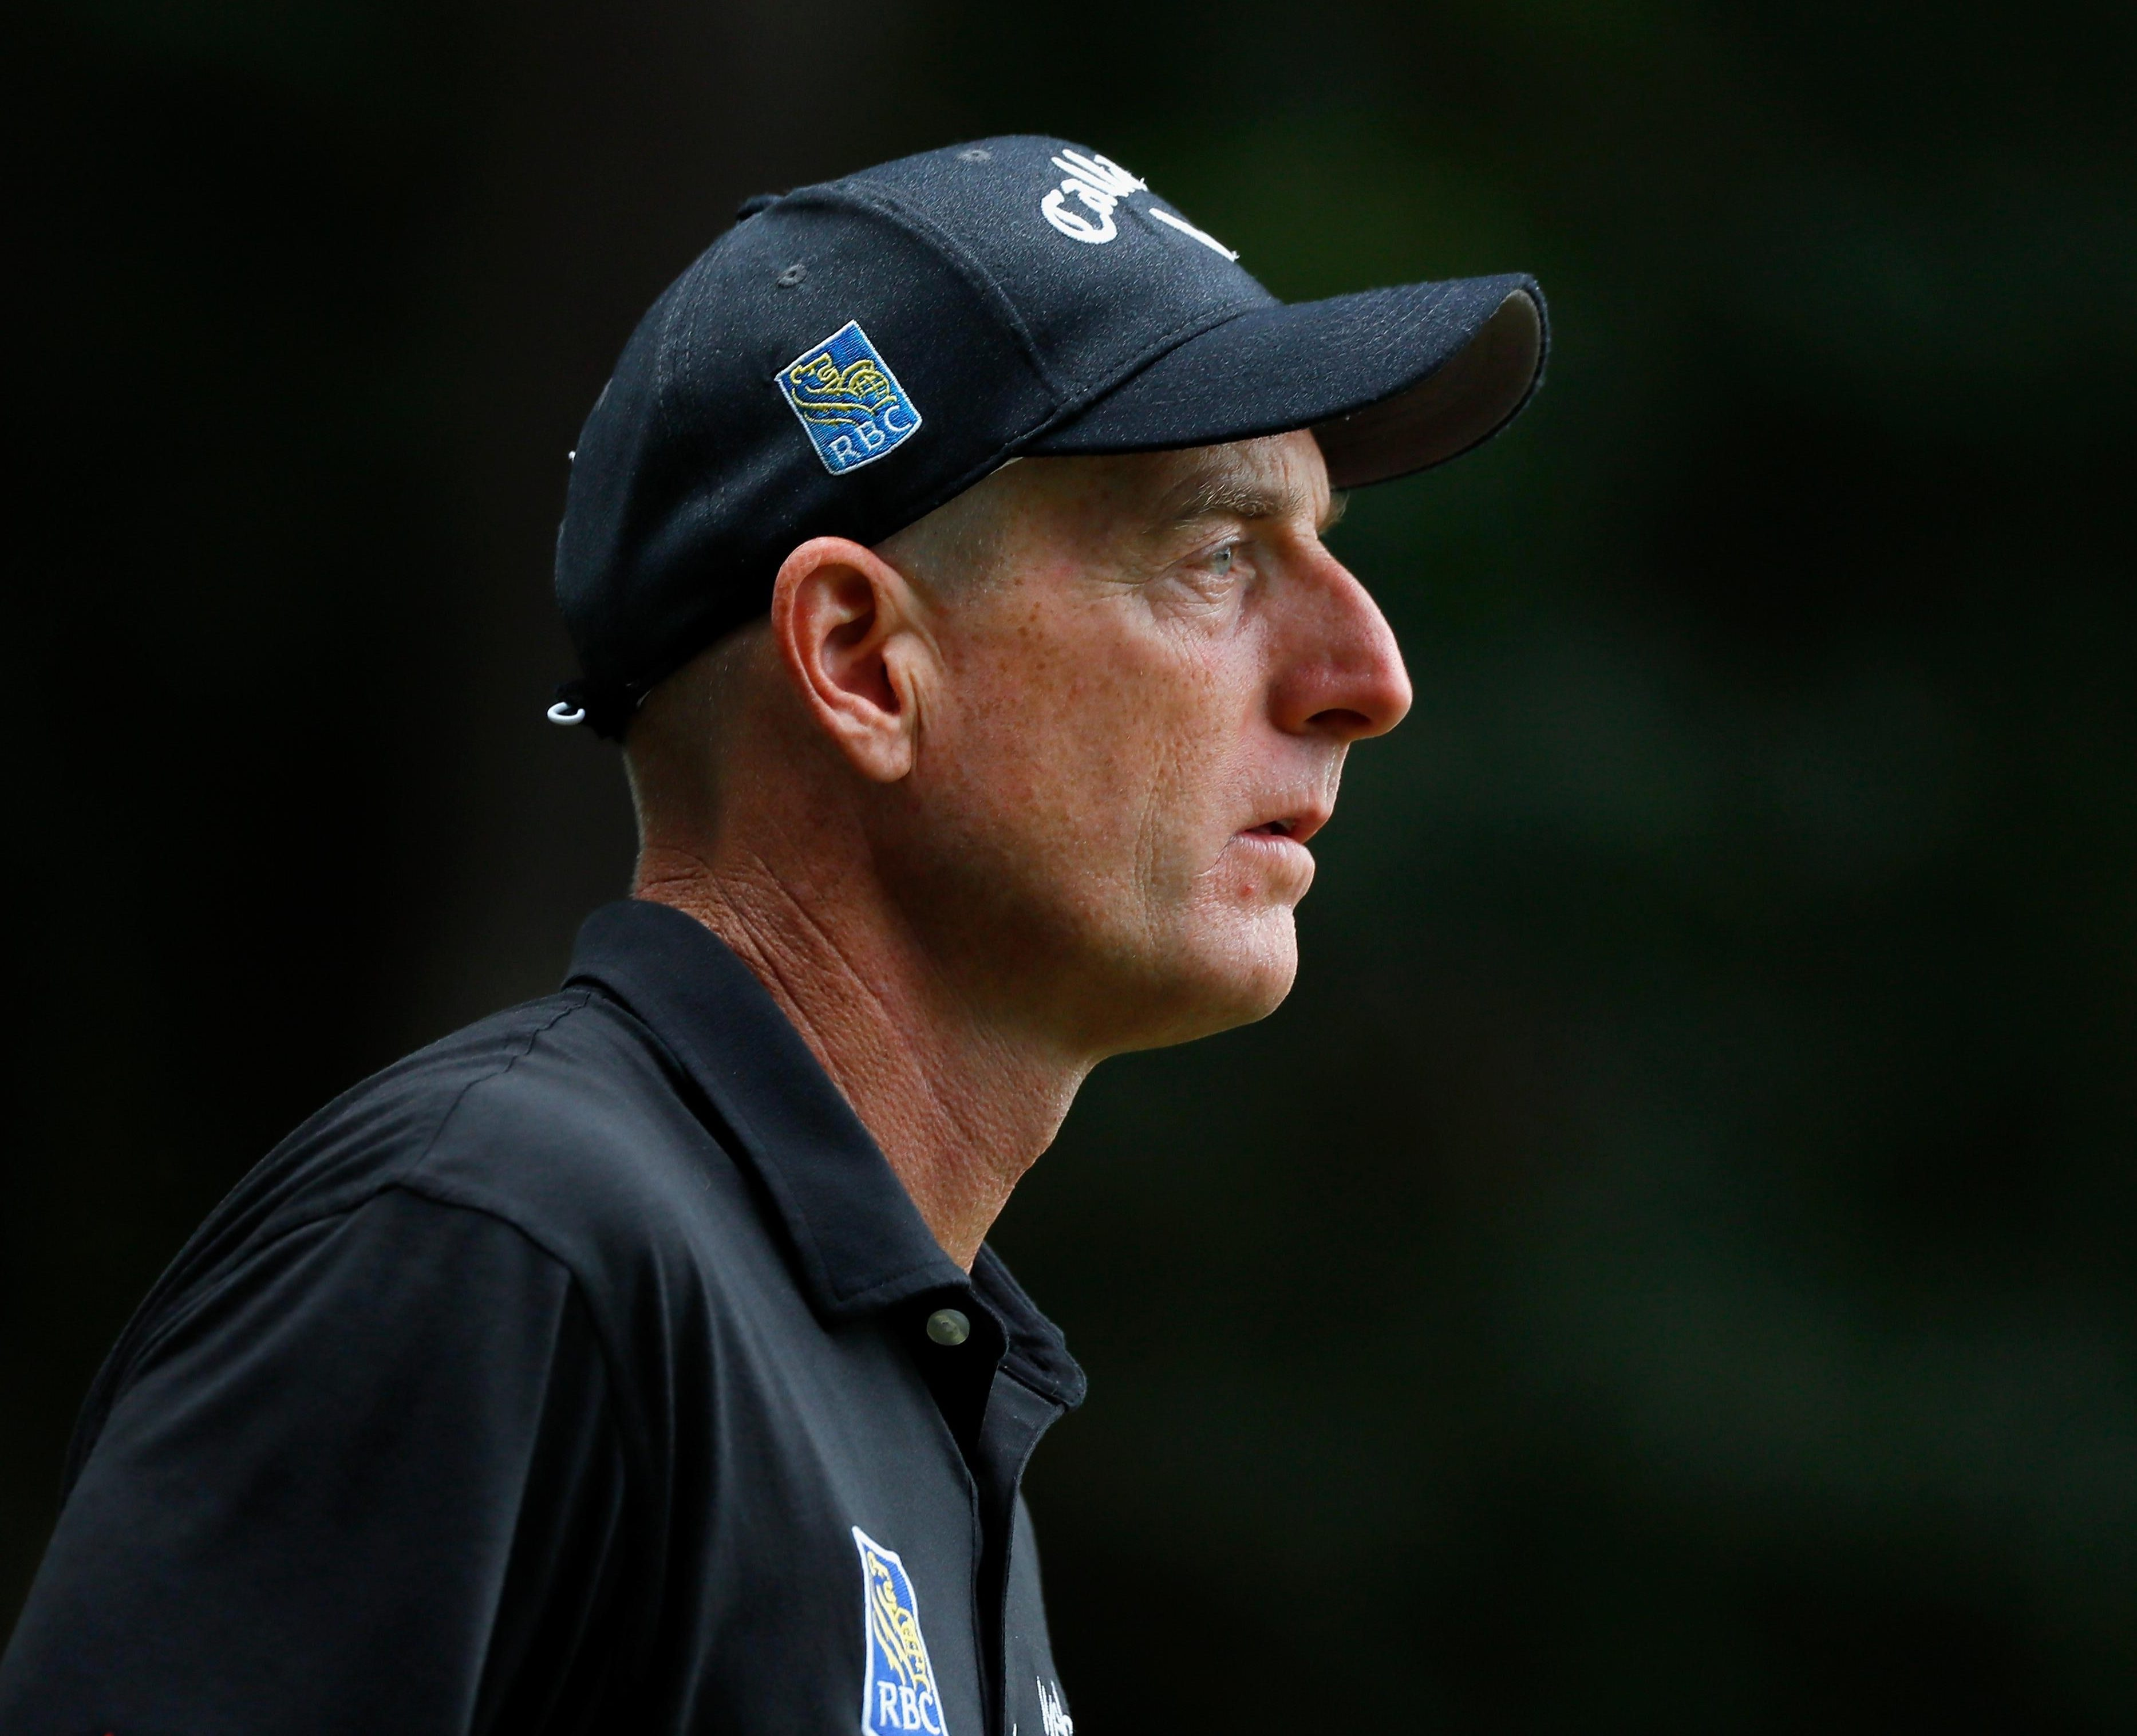 Jim Furyk is the American Captain for the 2018 Ryder Cup and has four wild cards to dish out in order to complete his team